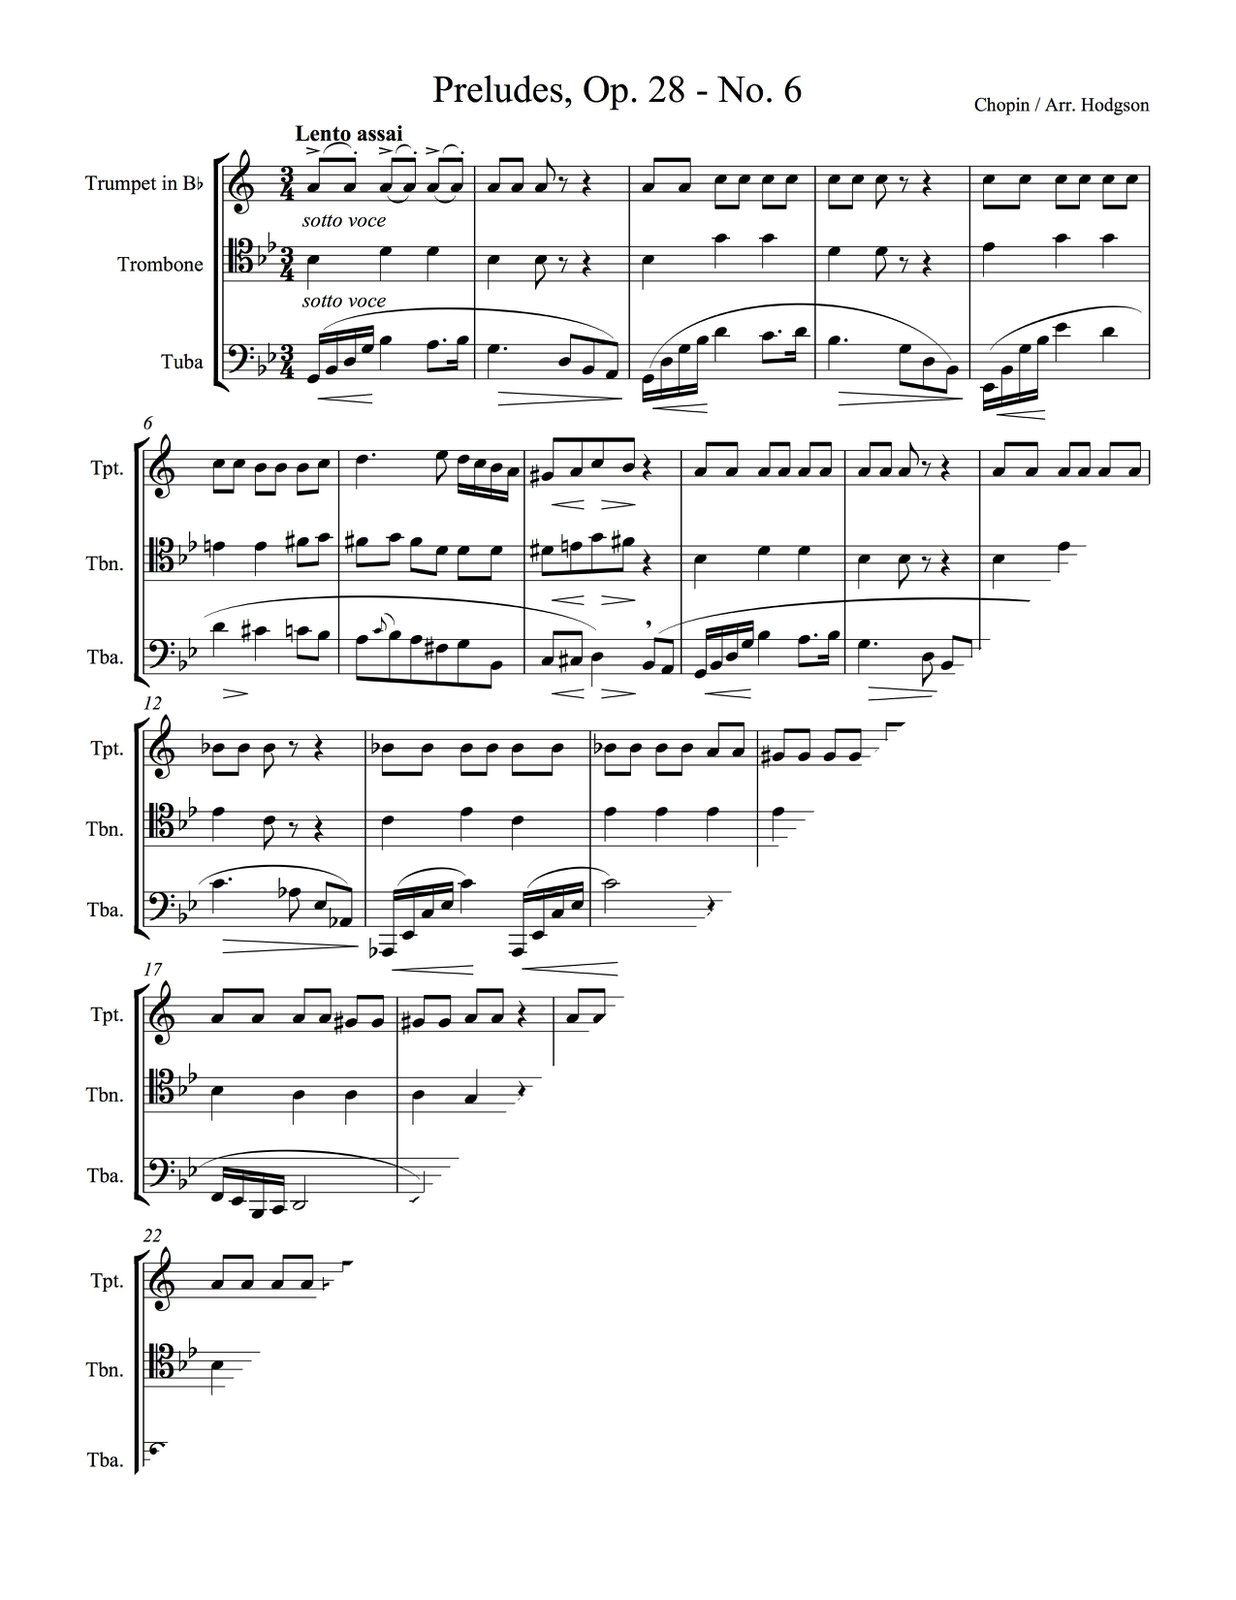 Chopin, Preludes Op.28 No.6 (Score and Parts)-p9